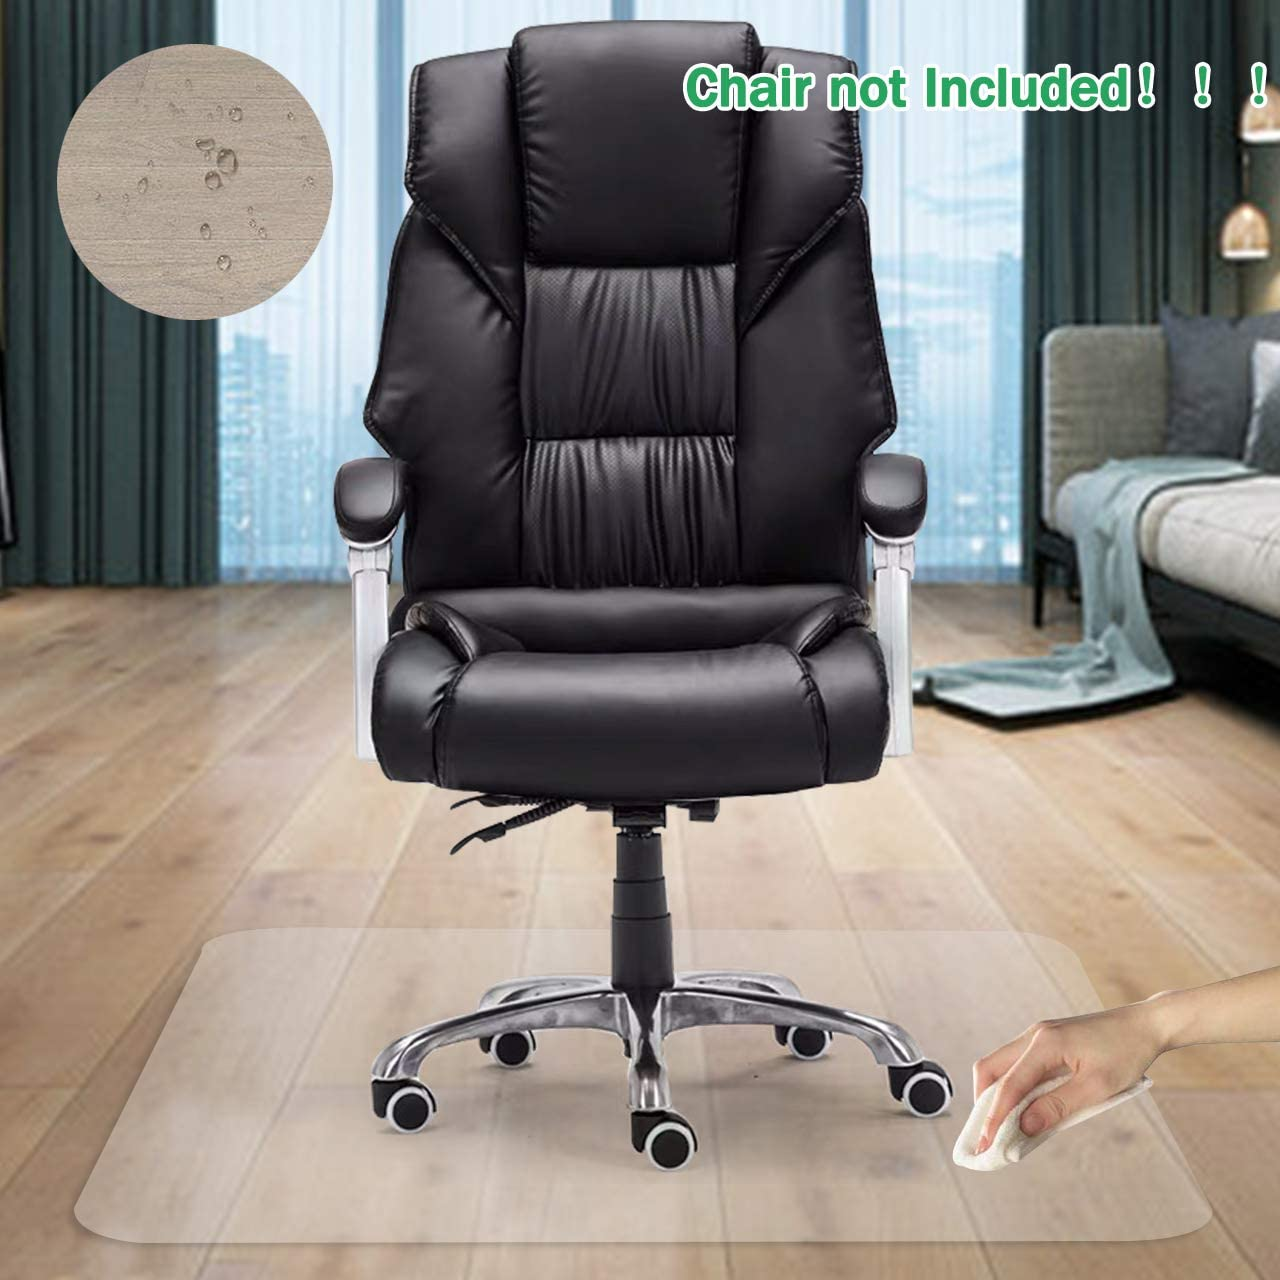 "GeeWin Home Office Chair Mat for Hardwood Floor, 30'' x 48'' Clear Floor Mat for Rolling Chairs, Floor Protector Thick Durable Chair Mat Chairmats (30"" X 48"" Rectangle)"